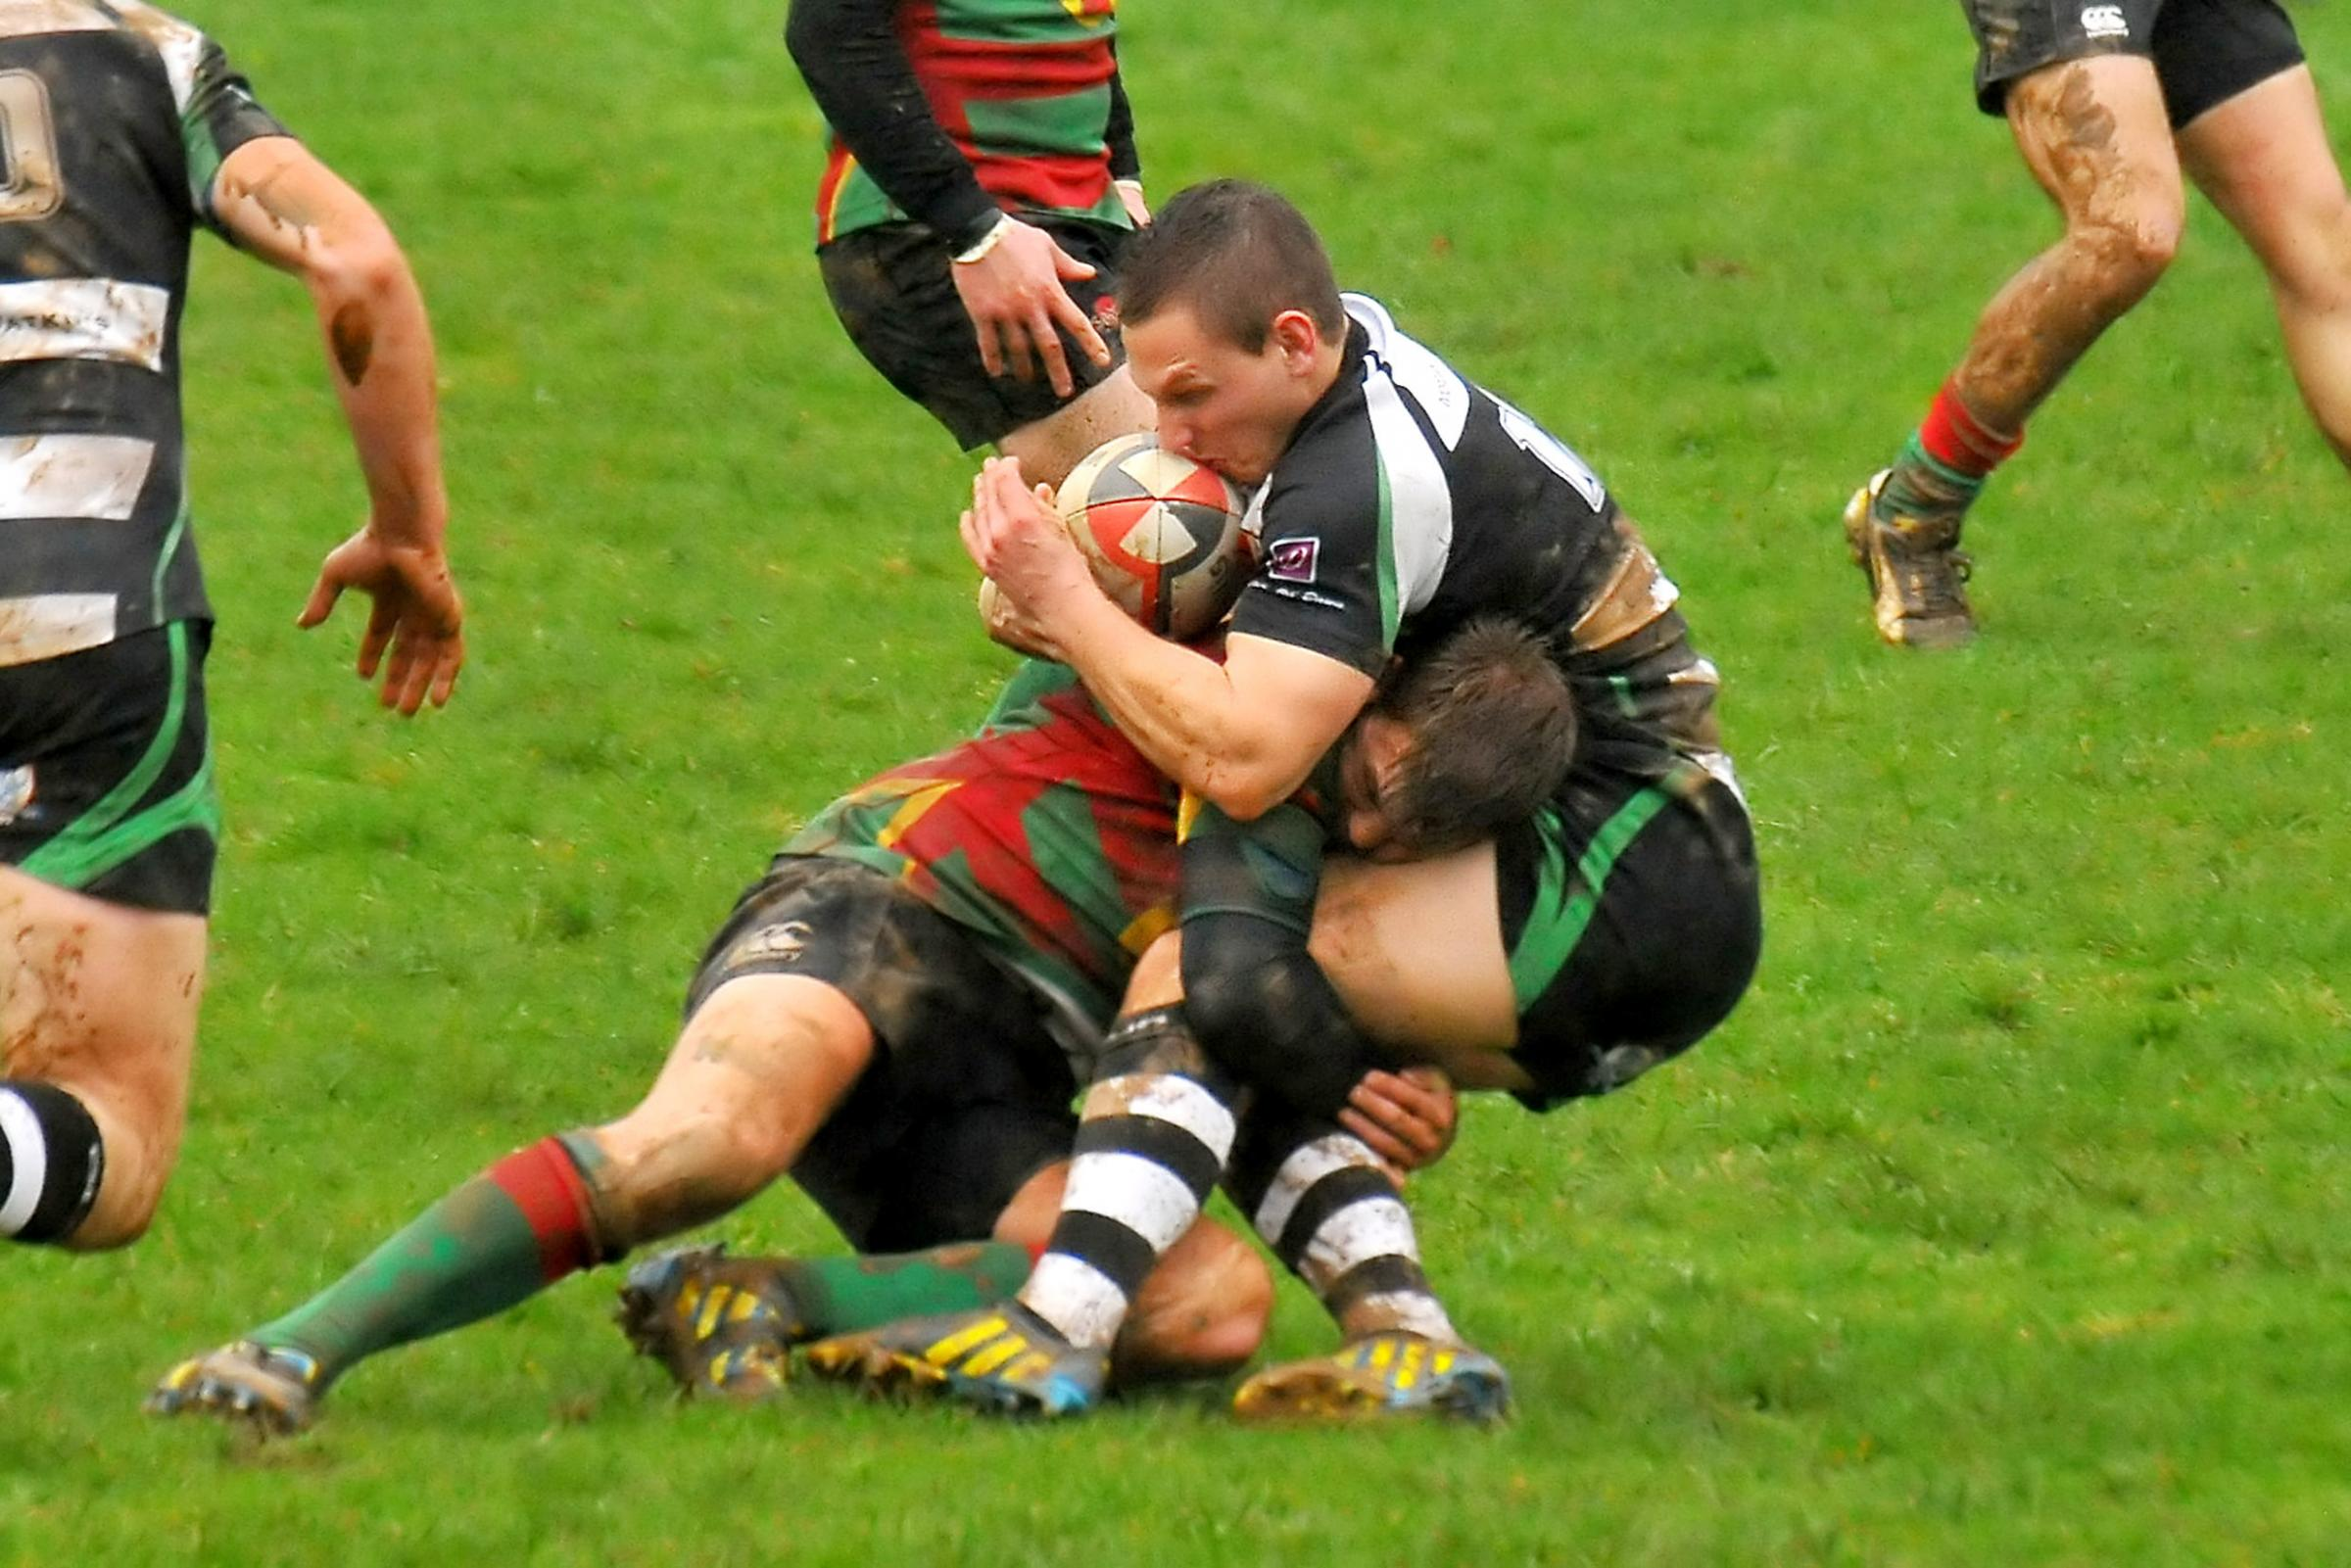 CRUNCH: Llandeilo's Aled Tommason has his run stopped in it's tracks by Llanybydder's Gary Evans.  Llanybydder beat the home team 13-18 in their Division Three West clash.  Picture by Mark Davies